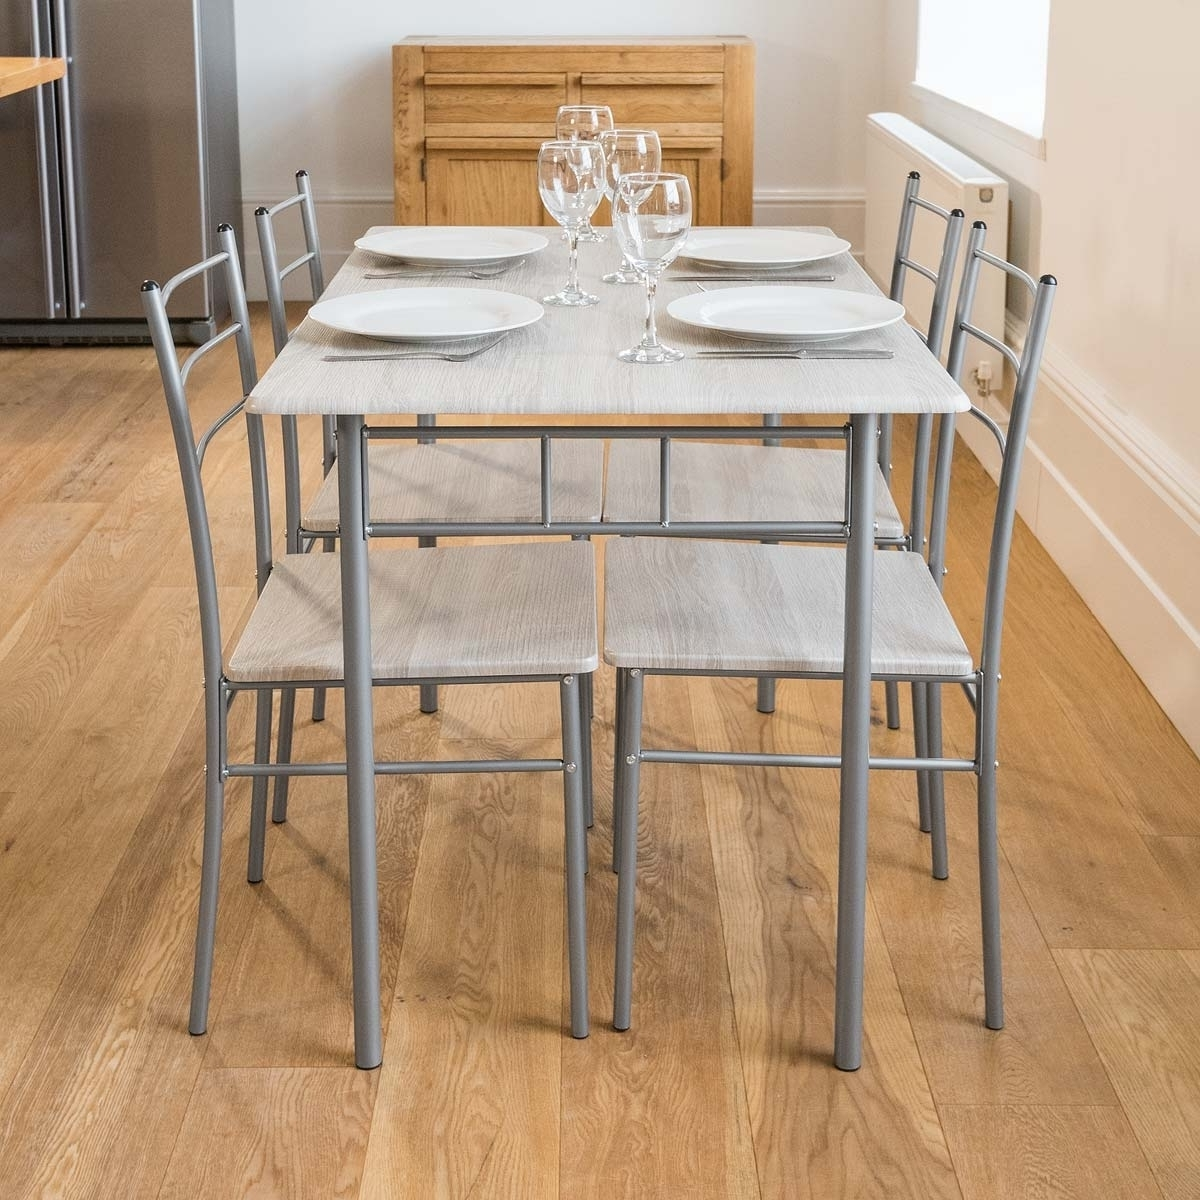 5 Piece Modern Dining Table And 4 Chairs Set Textured Wood Effect Pertaining To 2017 Modern Dining Table And Chairs (Gallery 17 of 25)